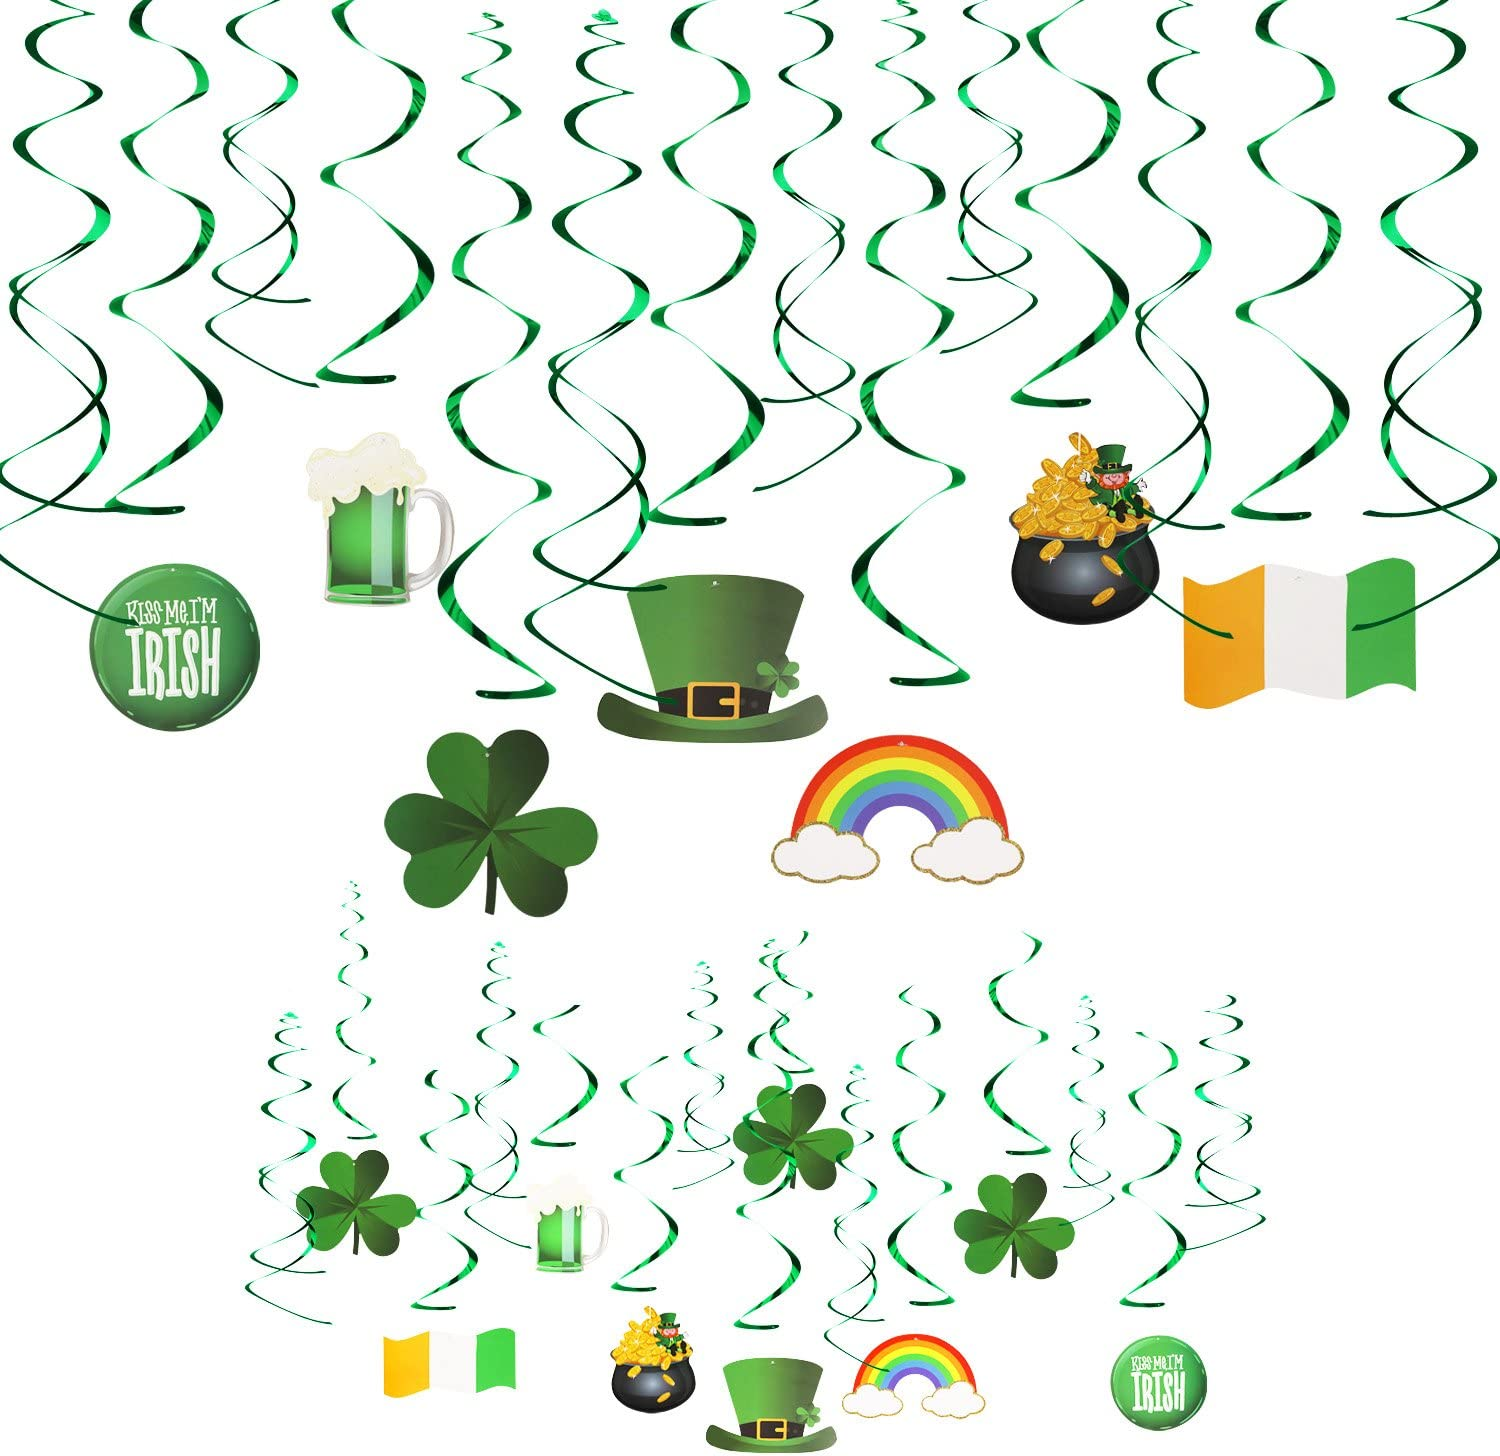 Lucky Irish Green Shamrock and Leprechaun Top Hat Hanging Swirl KissDate 30 Pcs St Perfect for Hanging Ceiling Window Wall Party Decor Supplies Patricks Day Foil Swirl Party Decoration